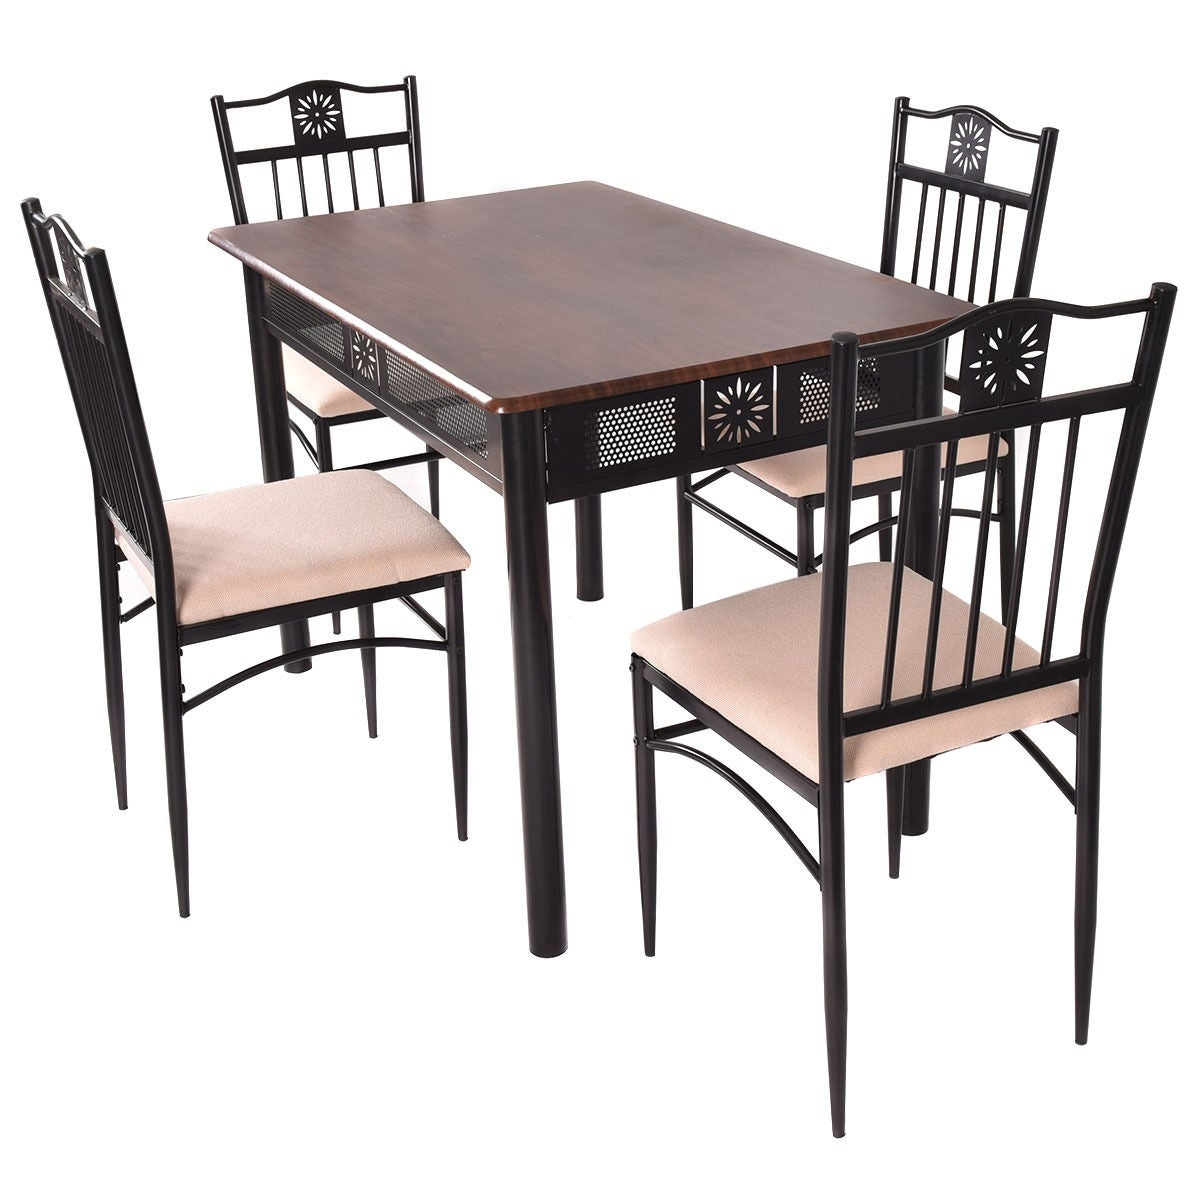 Shop costway 5 piece dining set wood metal table and 4 chairs kitchen breakfast furniture free shipping today overstock com 22573759